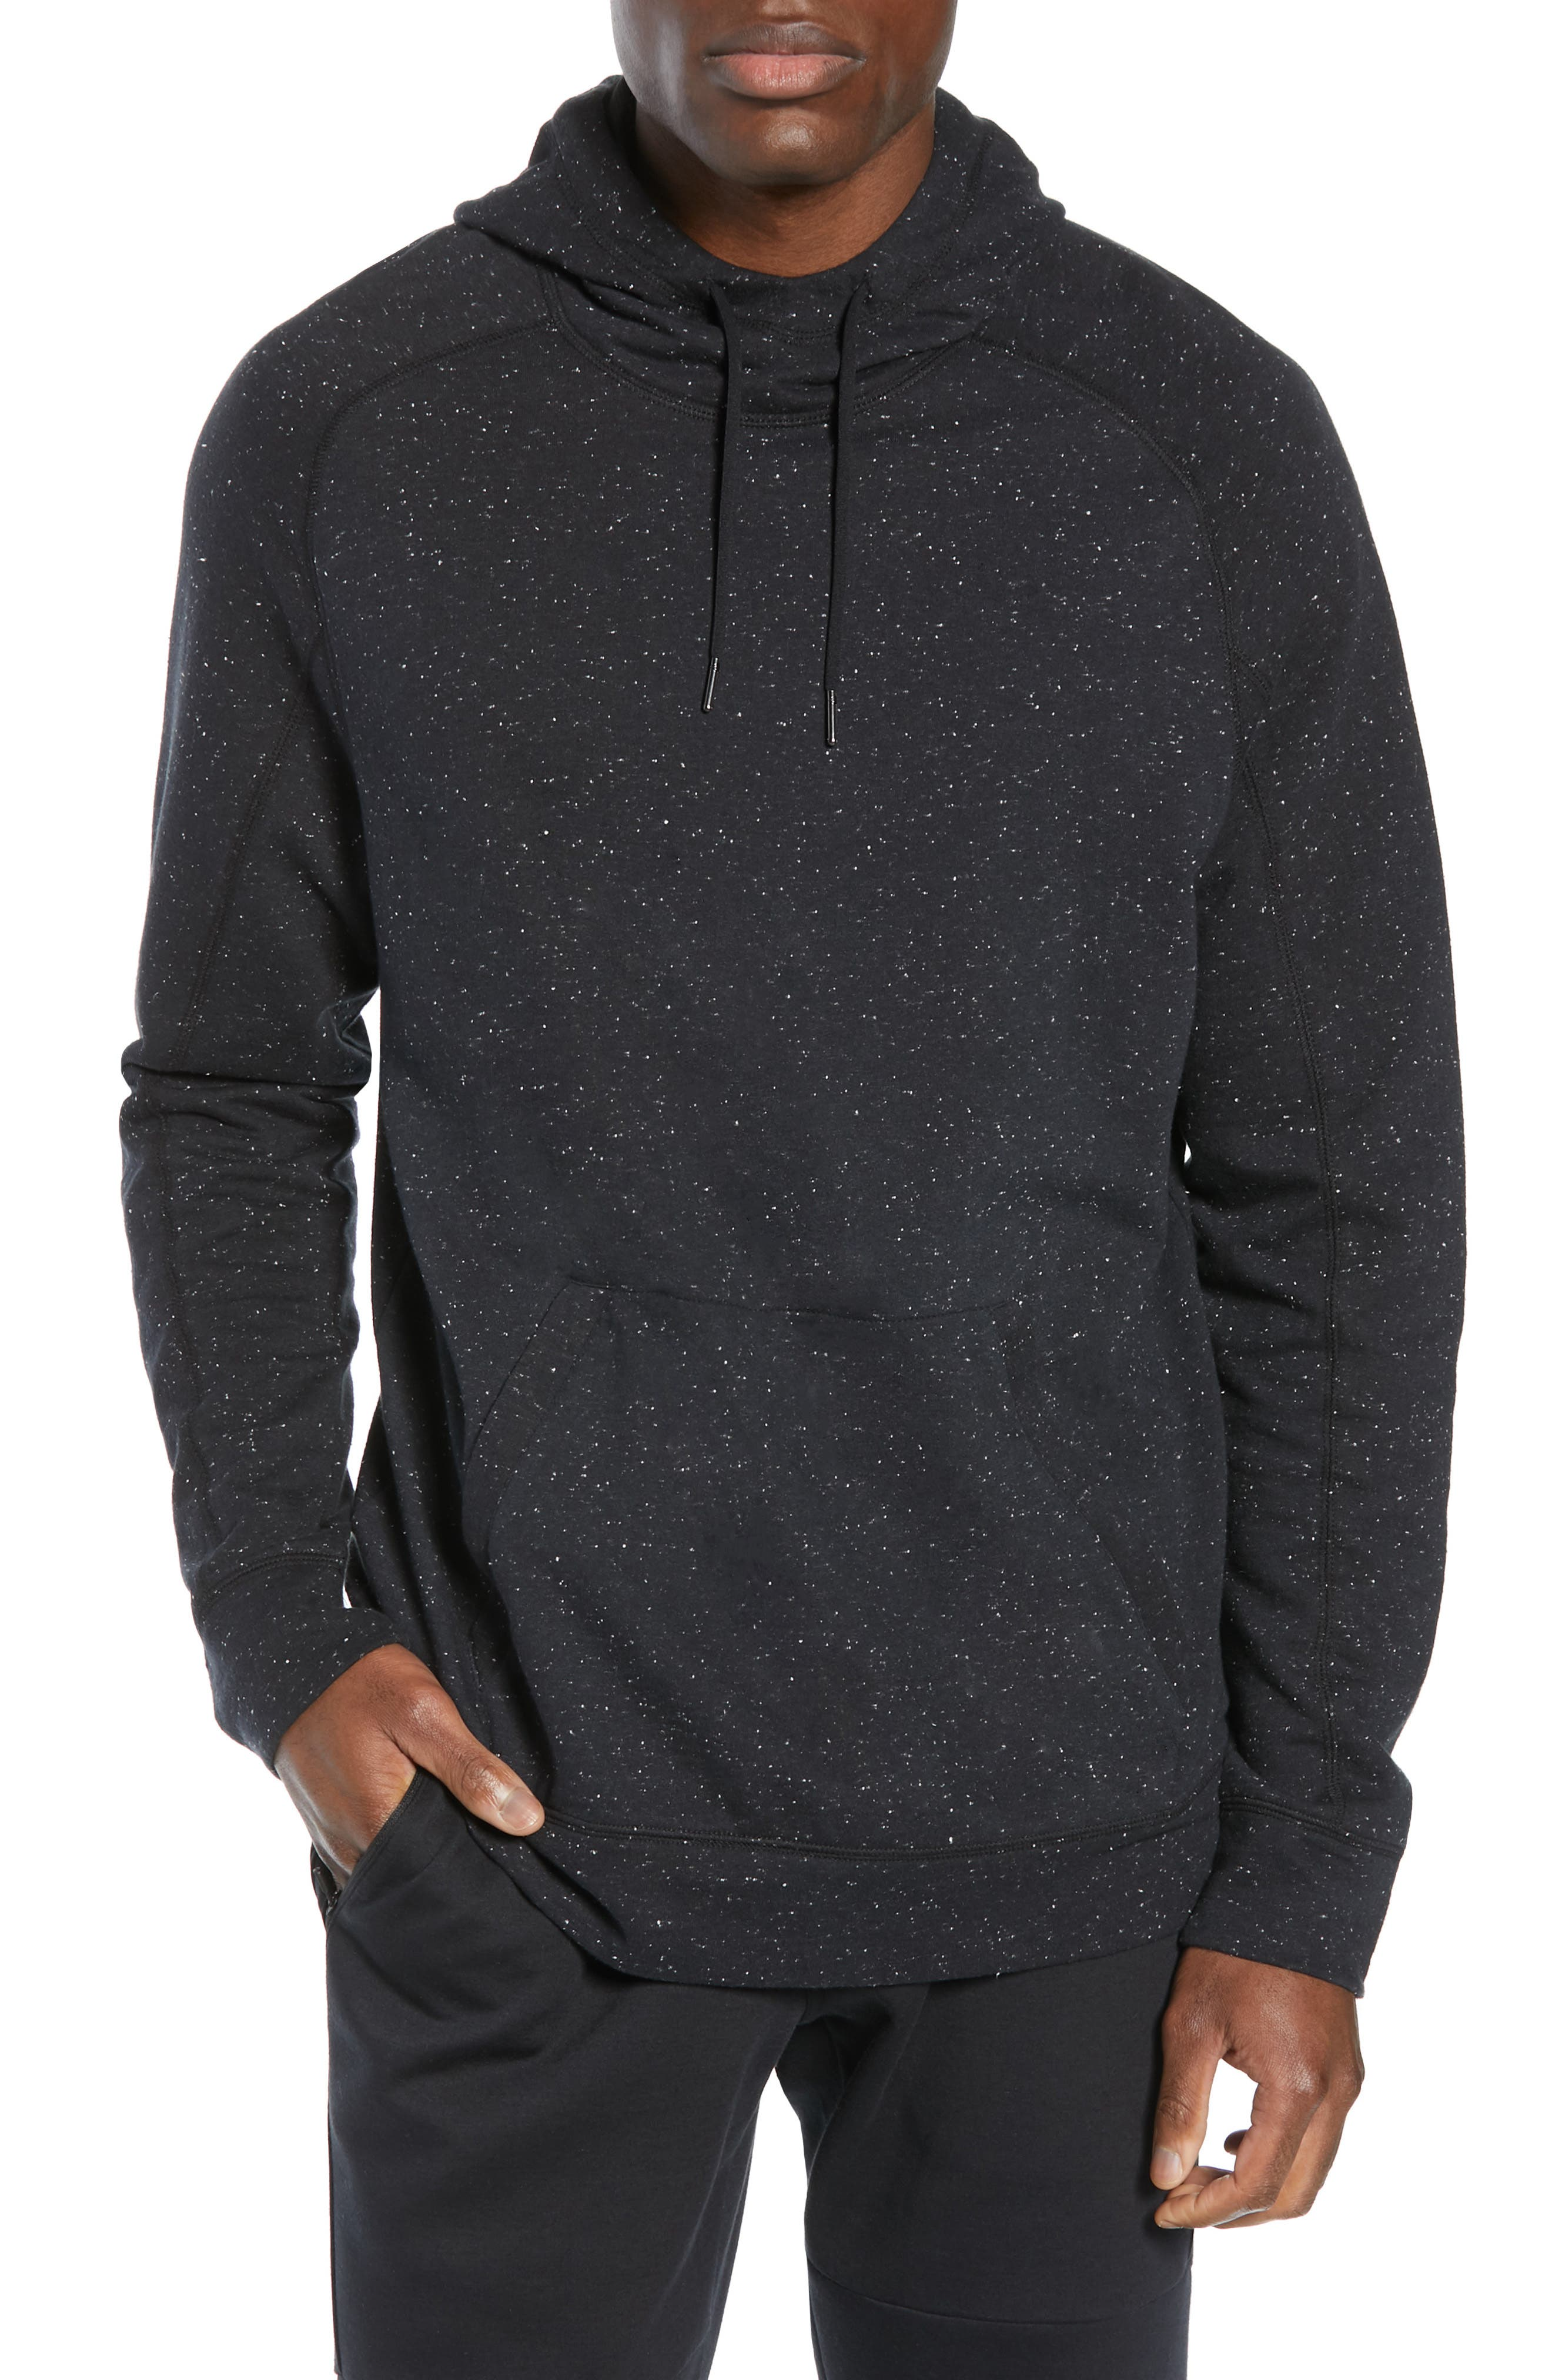 Nep Texture Hoodie,                             Main thumbnail 1, color,                             BLACK OXIDE NEP